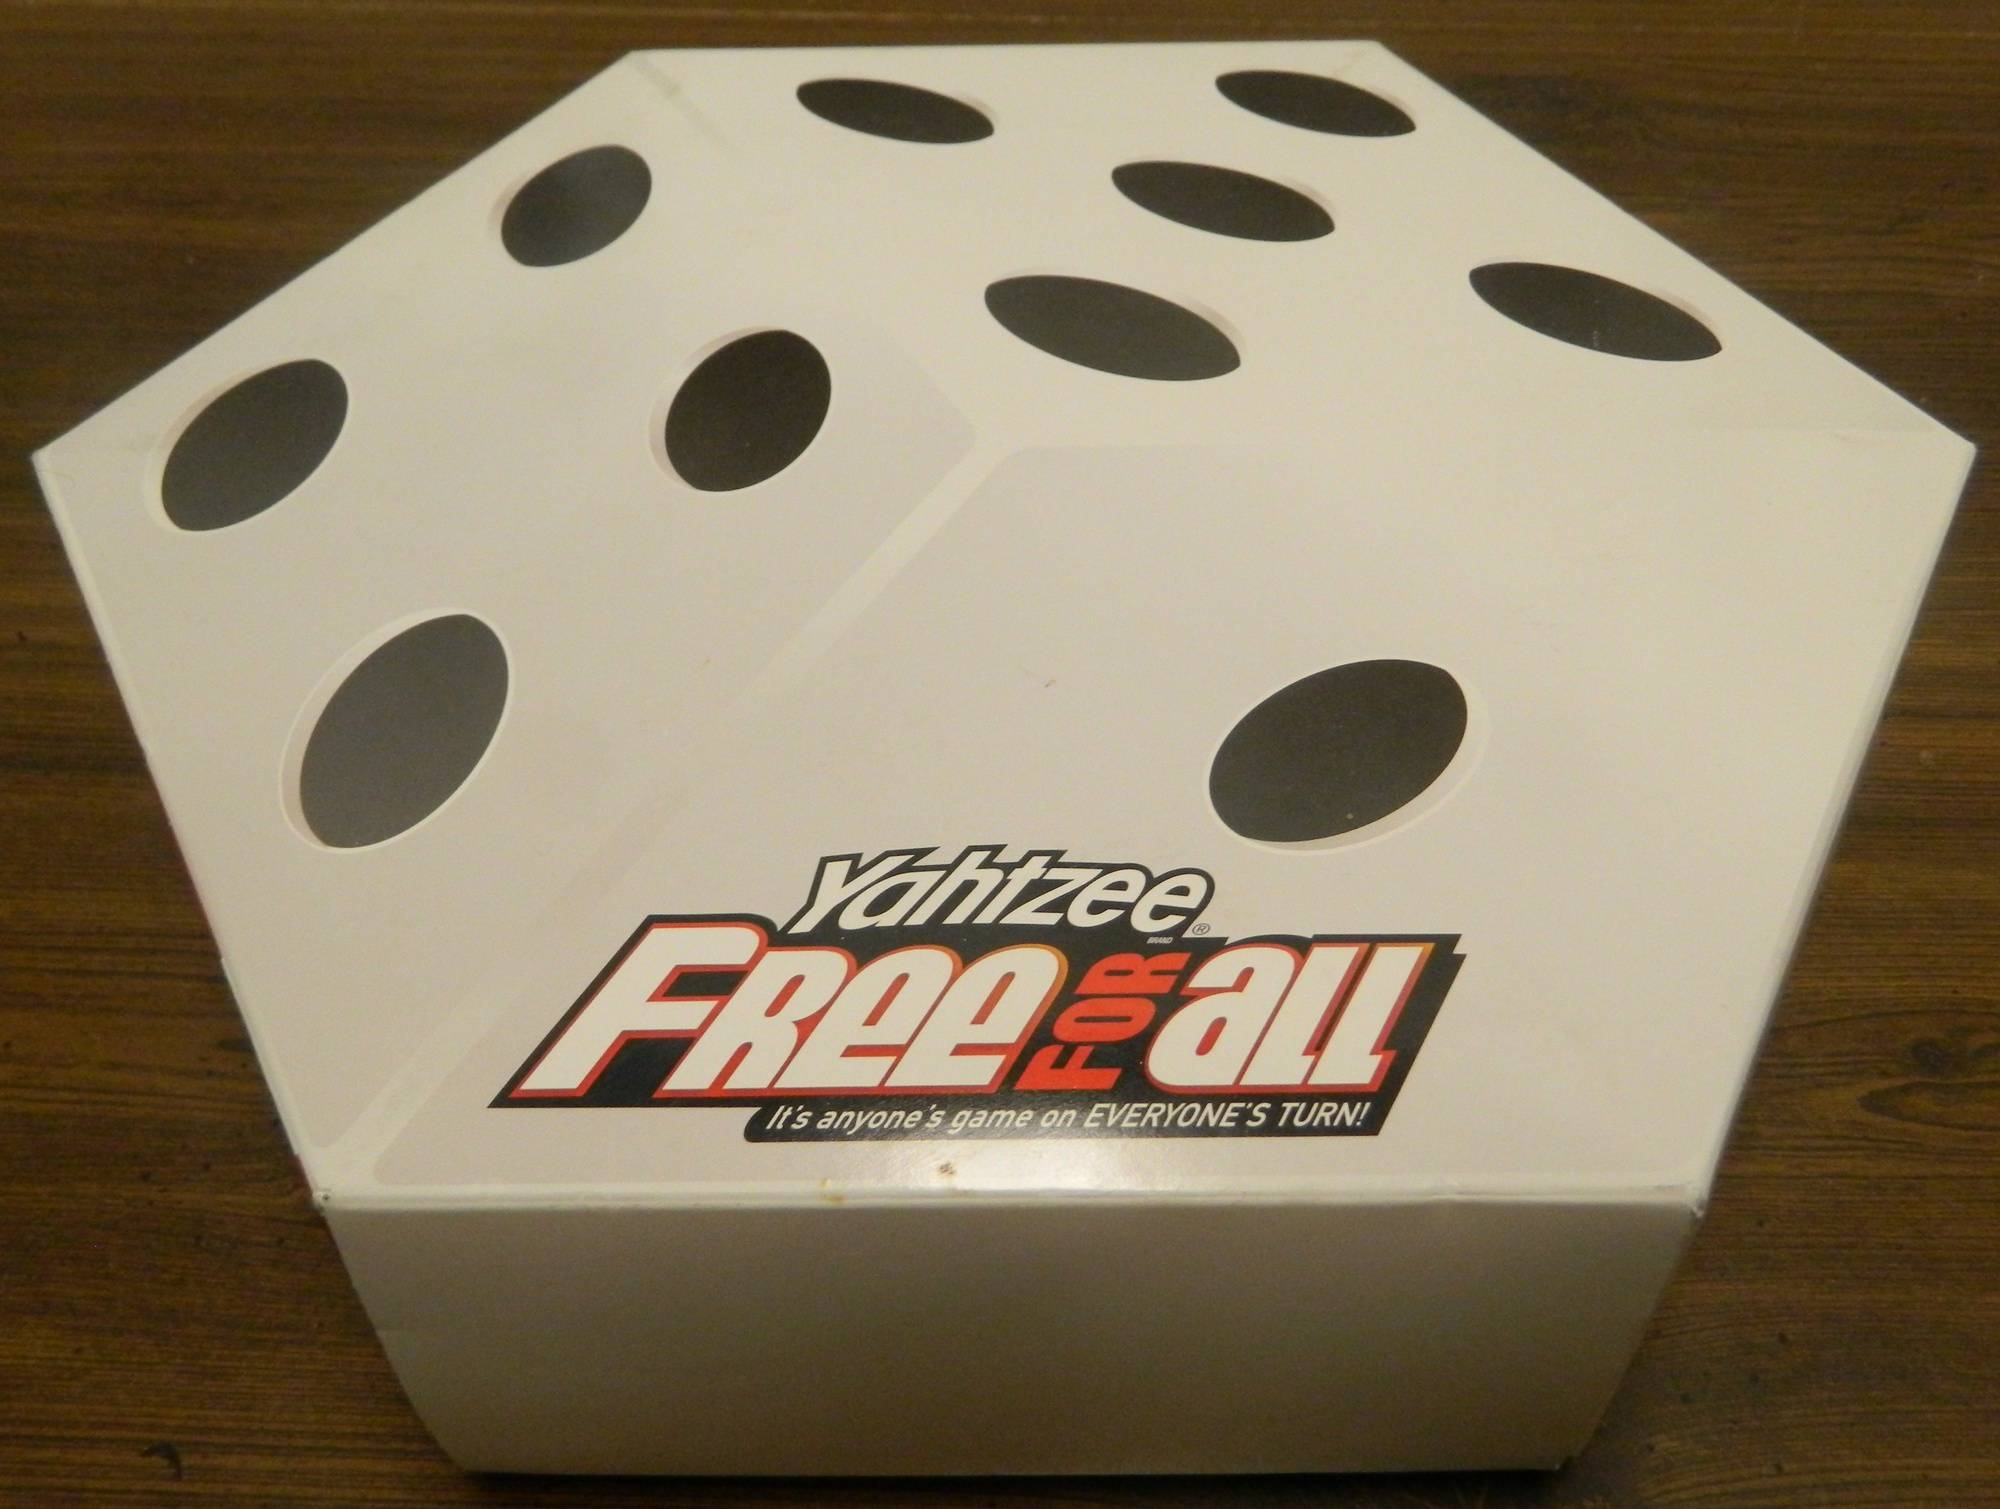 Box for Yahtzee Free For All